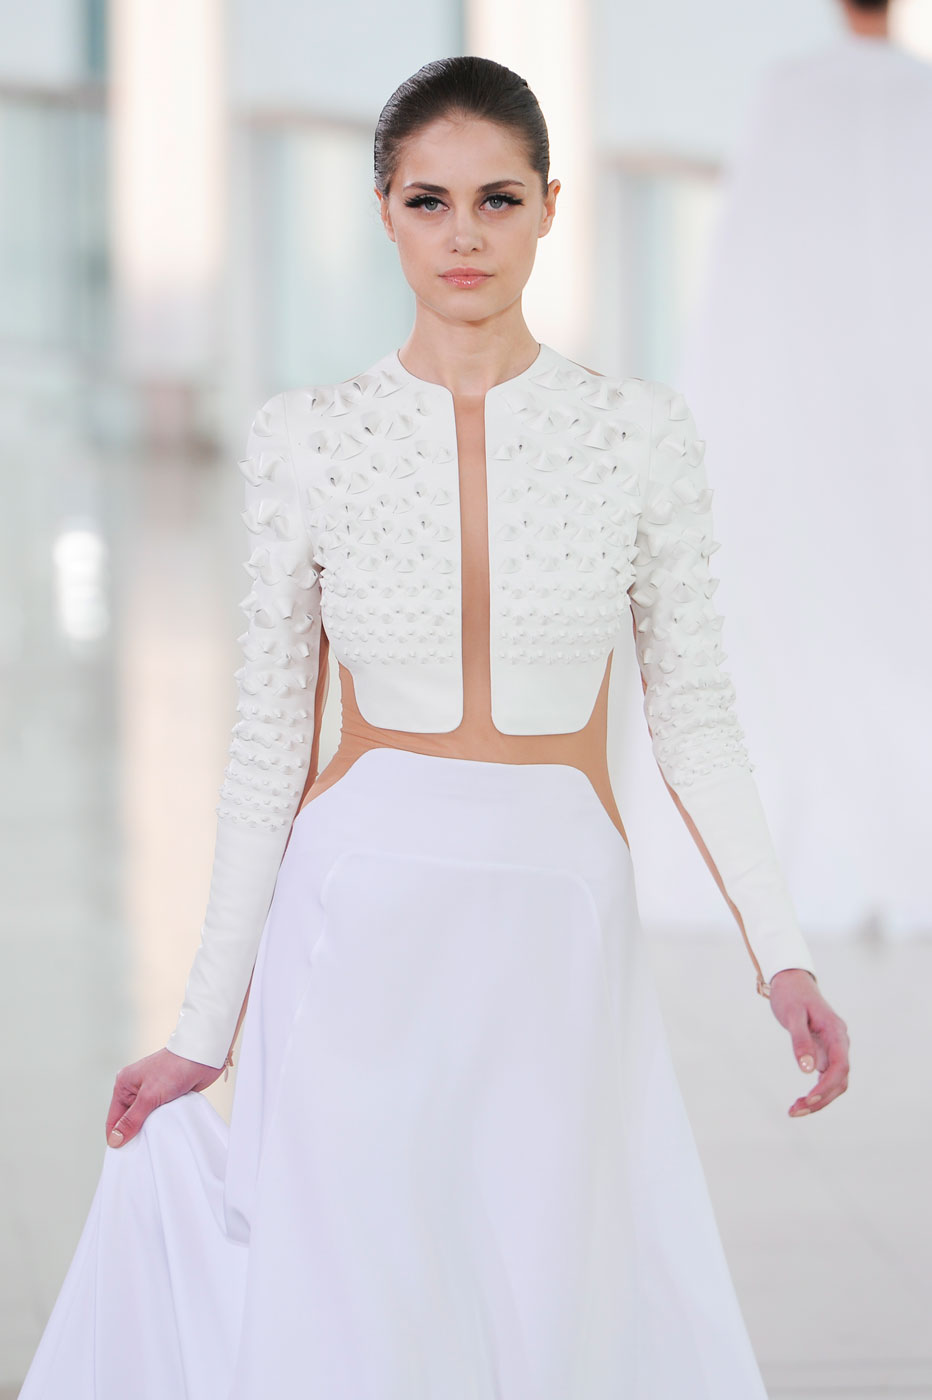 stephane-rolland-fashion-runway-show-haute-couture-paris-spring-2015-the-impression-19